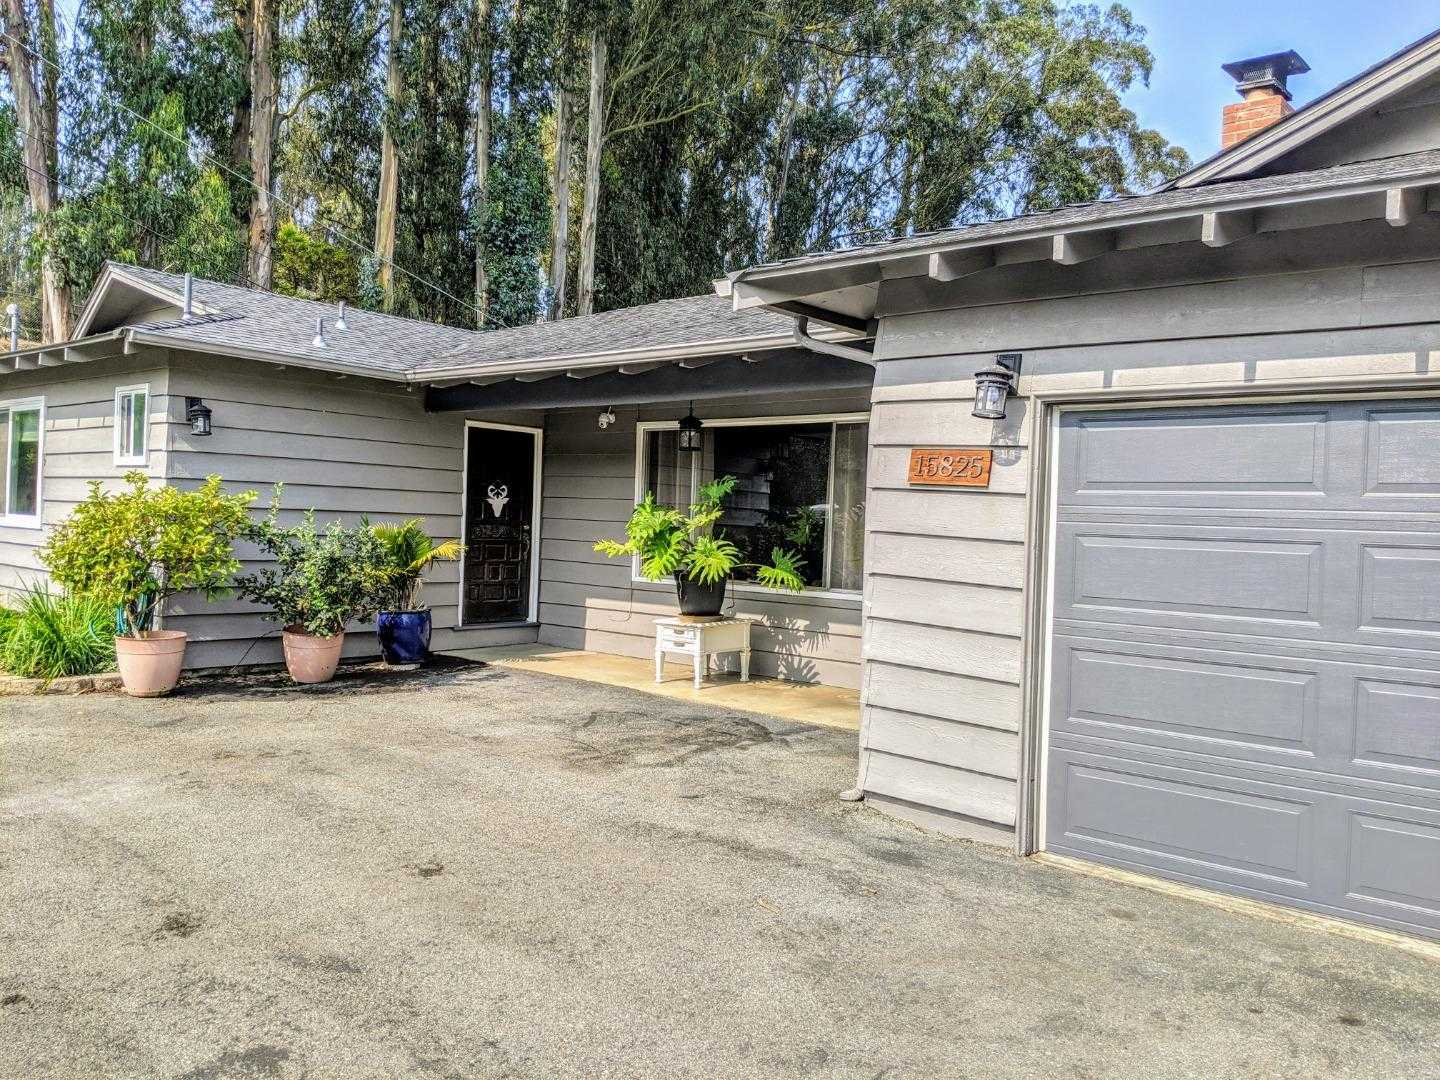 $760,000 - 3Br/2Ba -  for Sale in Salinas